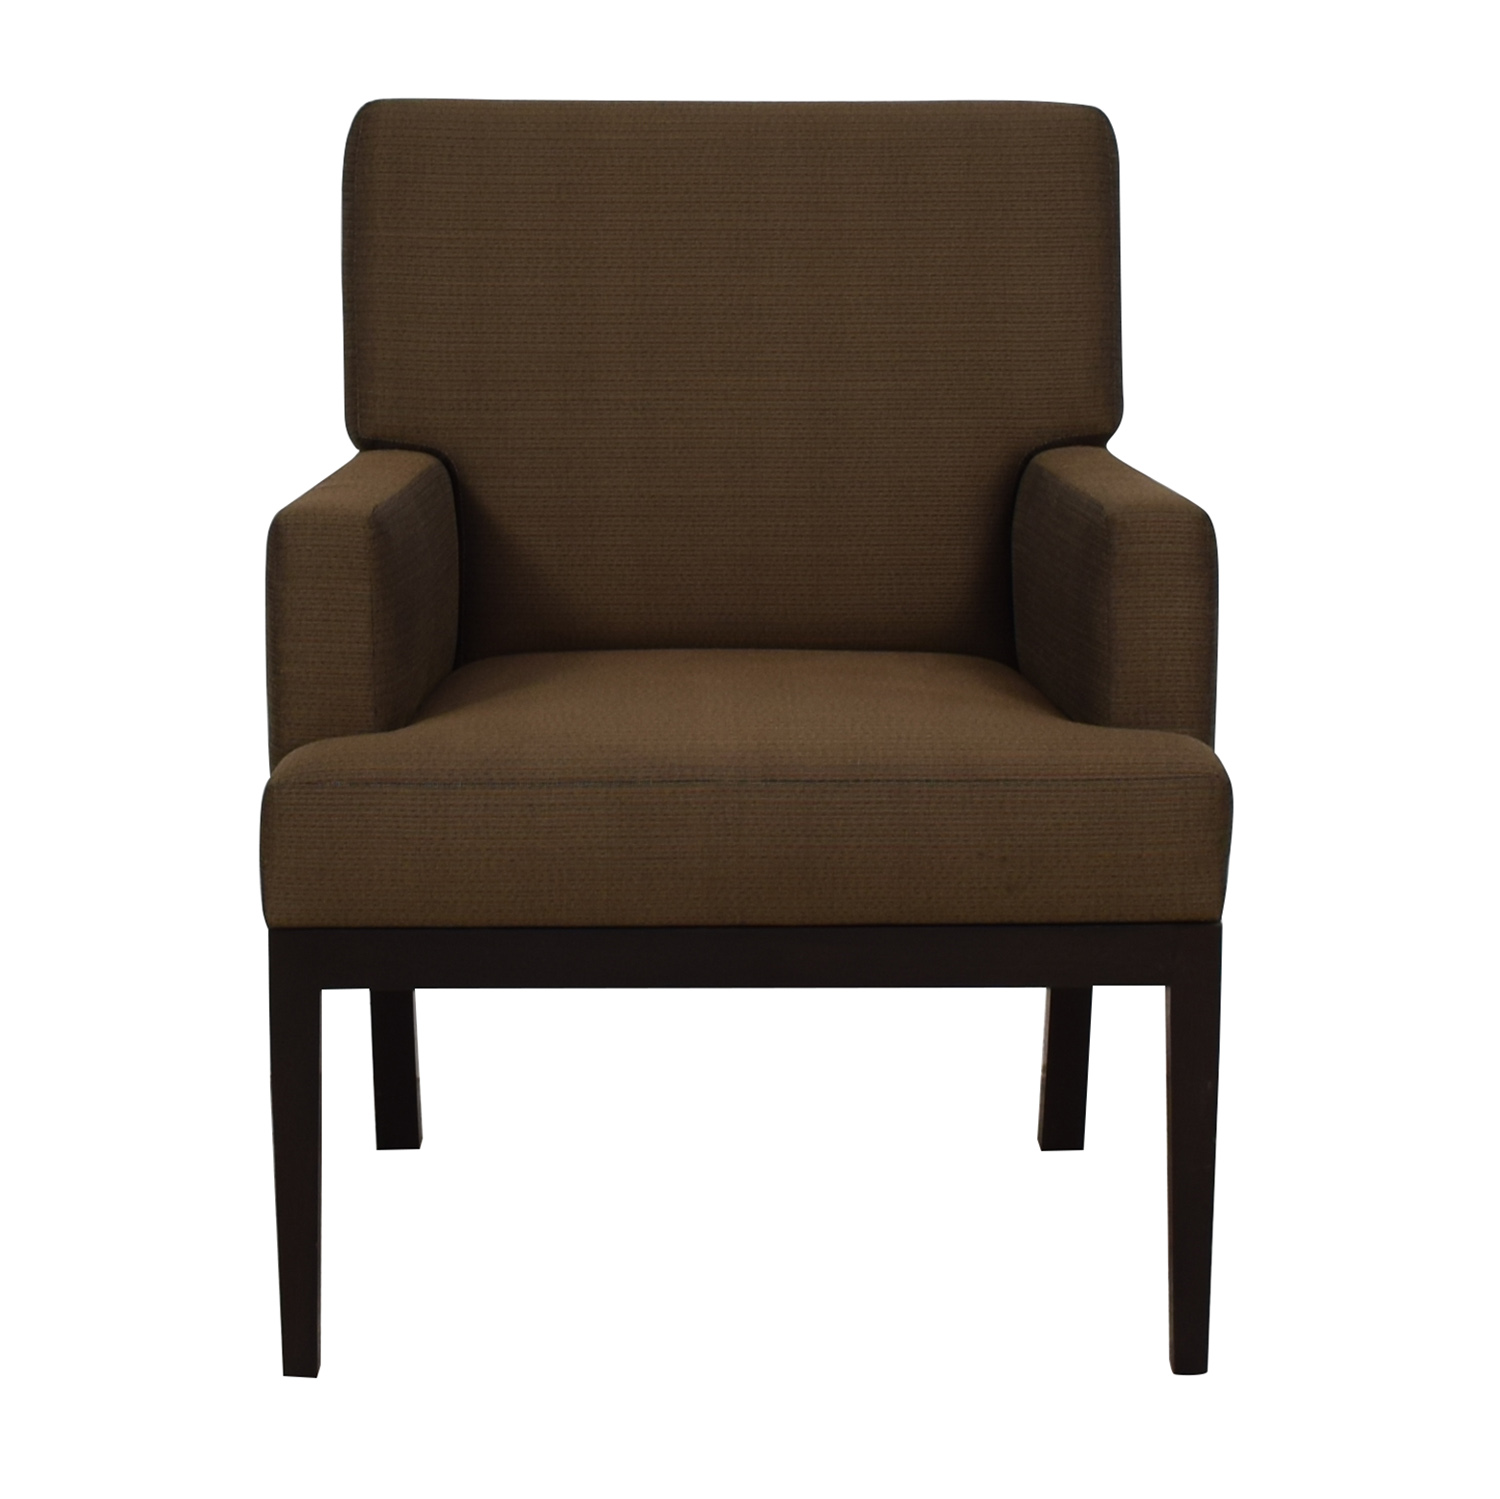 Furniture Masters Furniture Masters Stripped Brown Accent Chair coupon